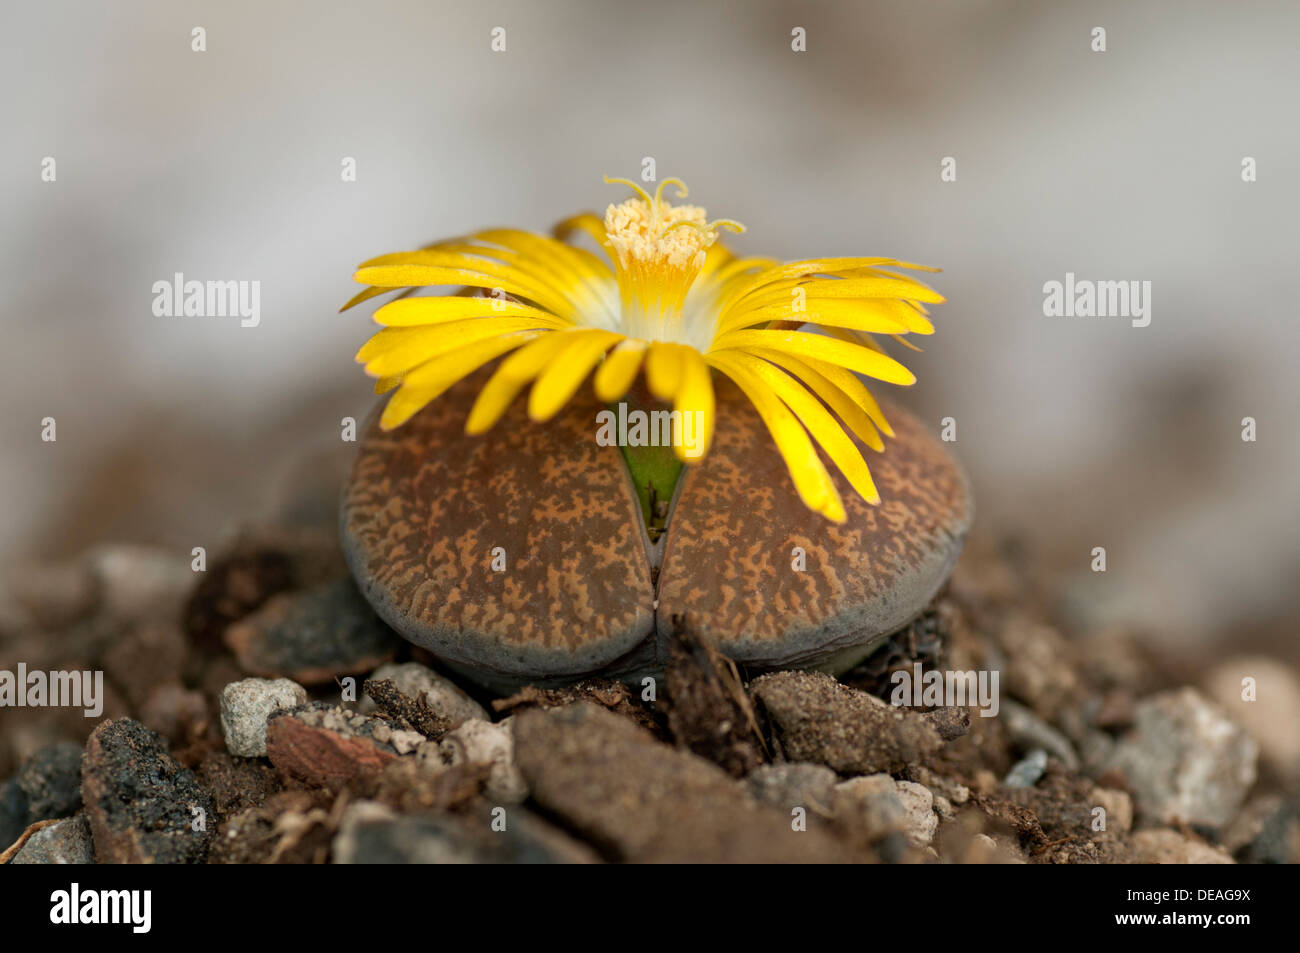 Blooming Lithops aucampiaea, Living Stone, Mesmbryanthemaceae - Stock Image